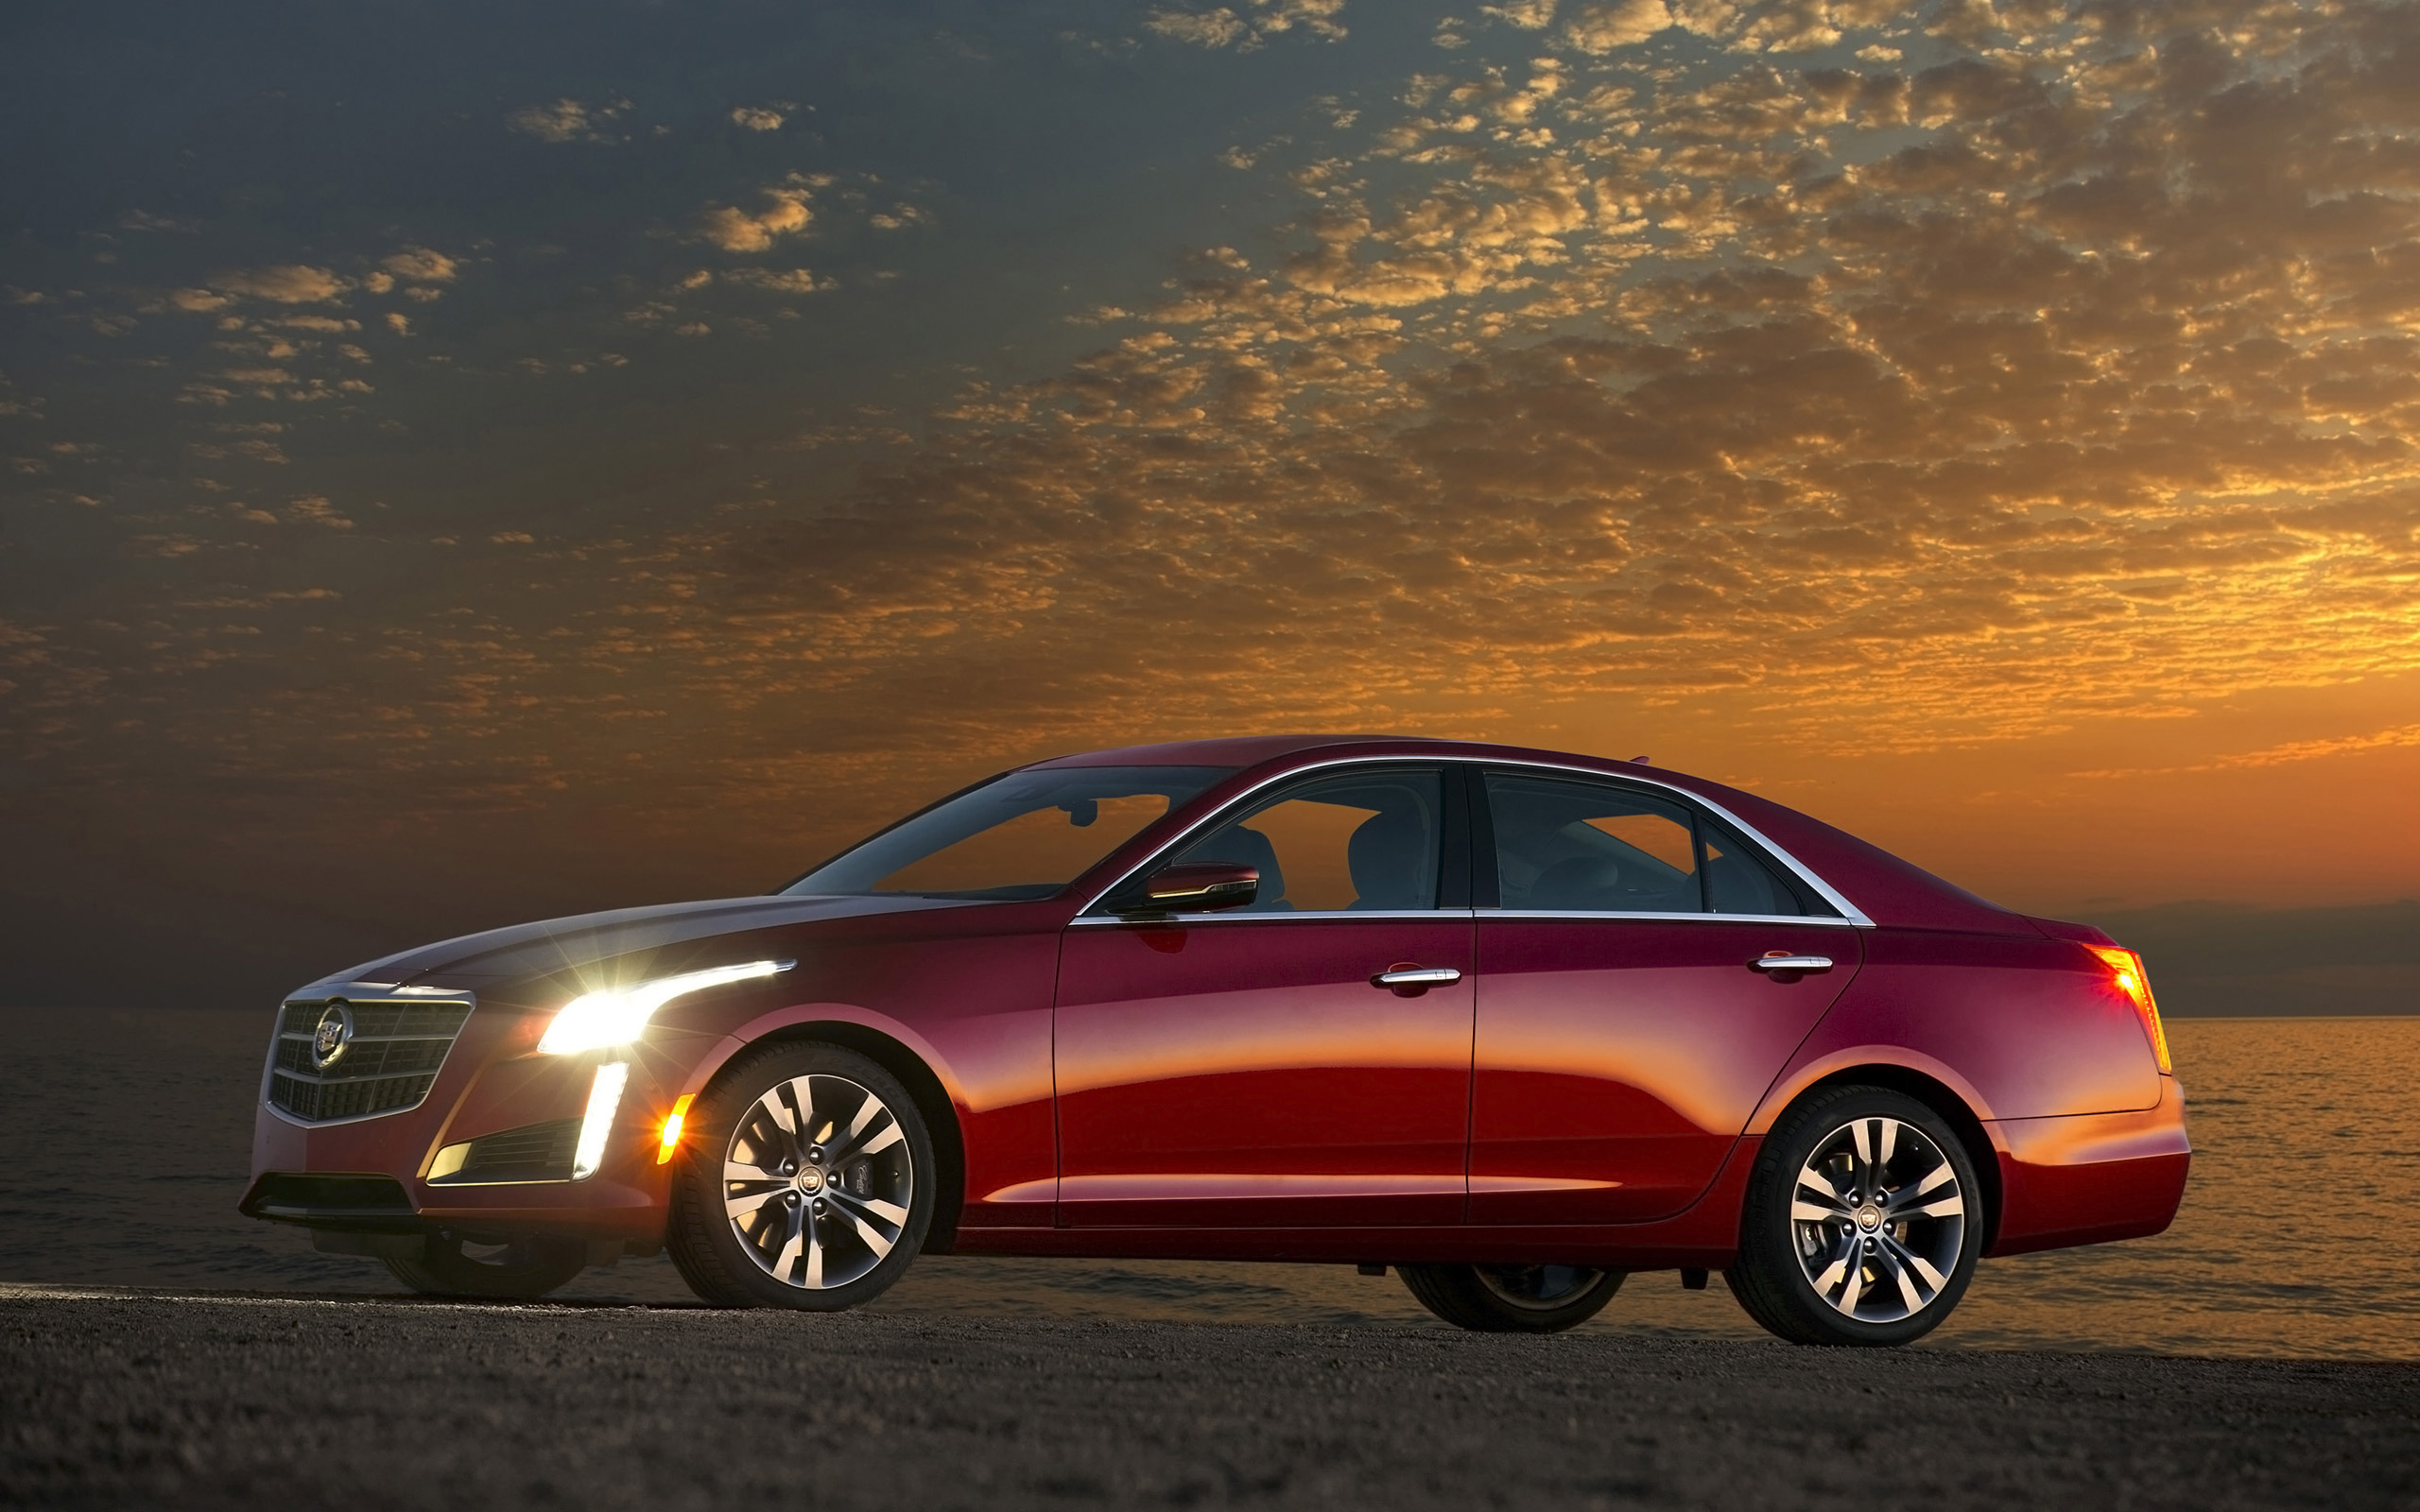 cadillac full hd wallpaper and background image